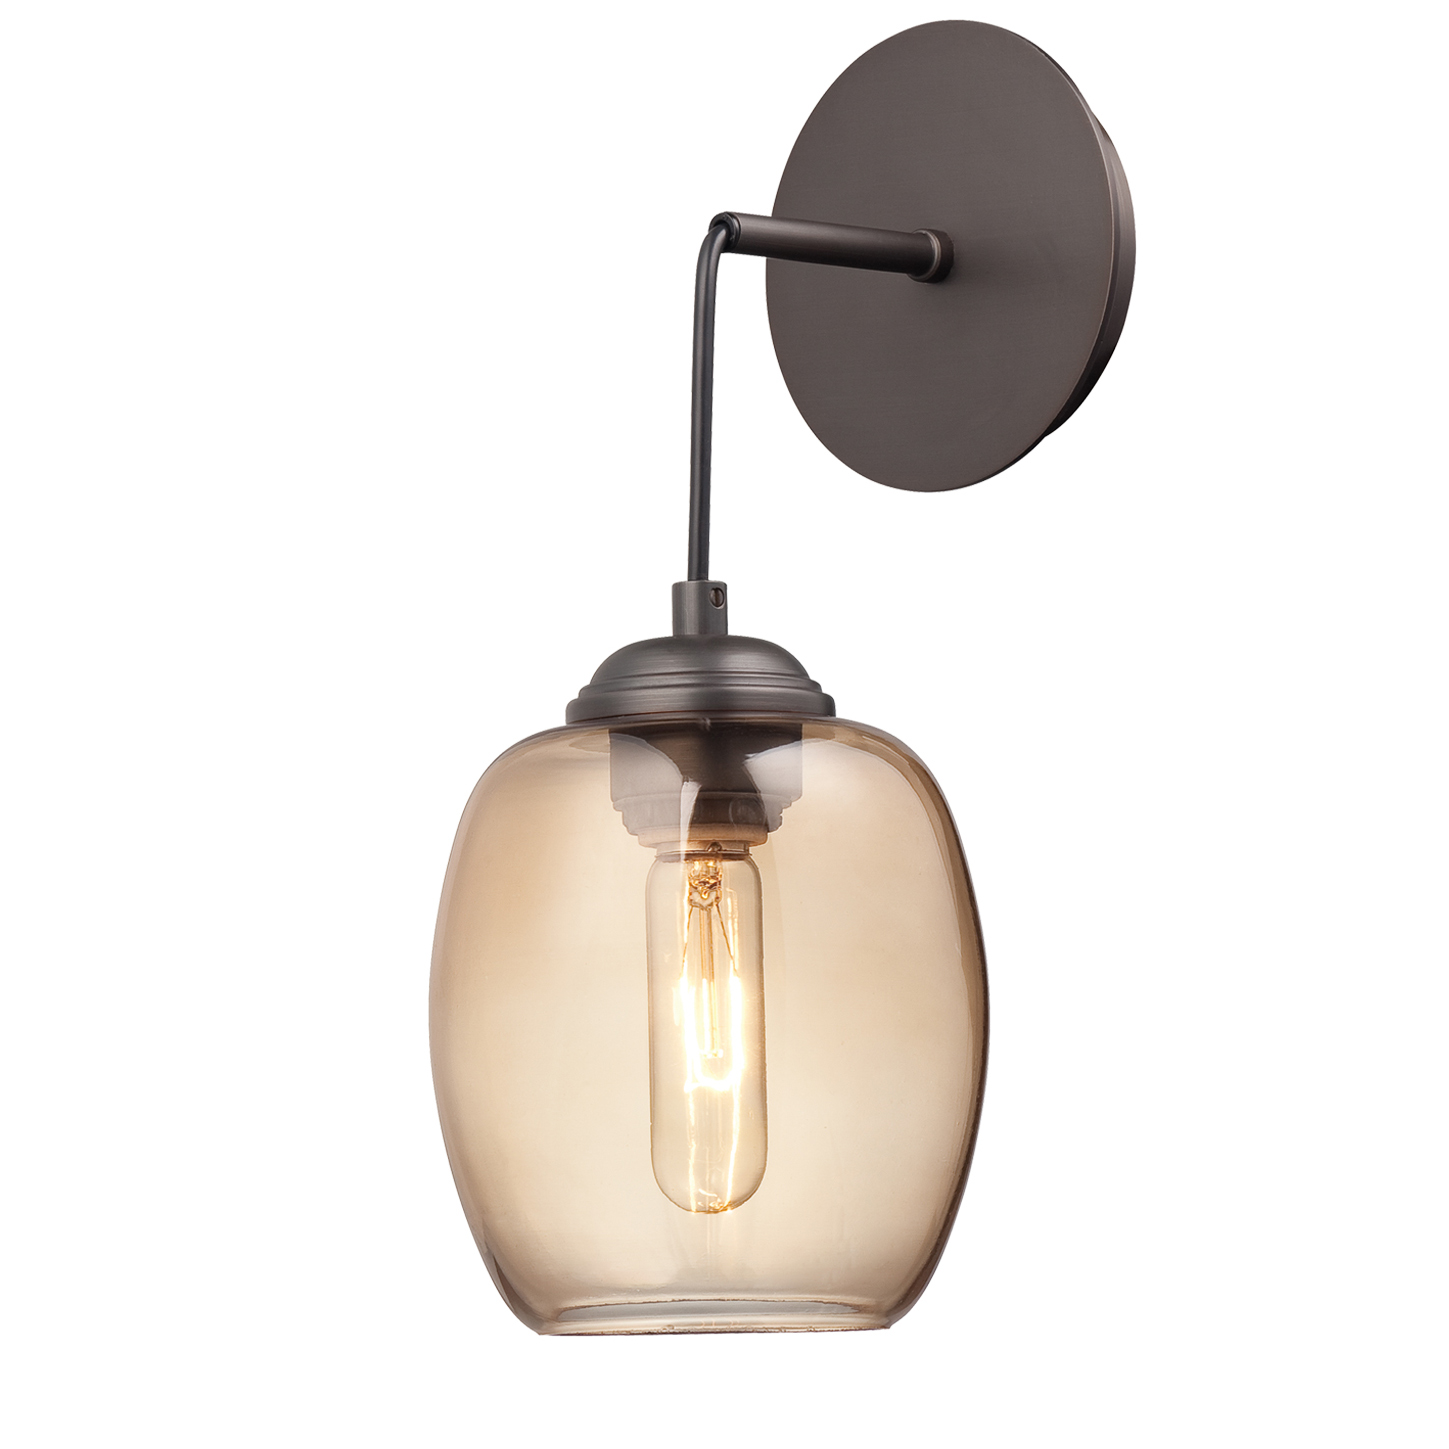 Convertible wall sconce by george kovacs p931 647 bubble convertible wall sconce by george kovacs p931 647 amipublicfo Choice Image